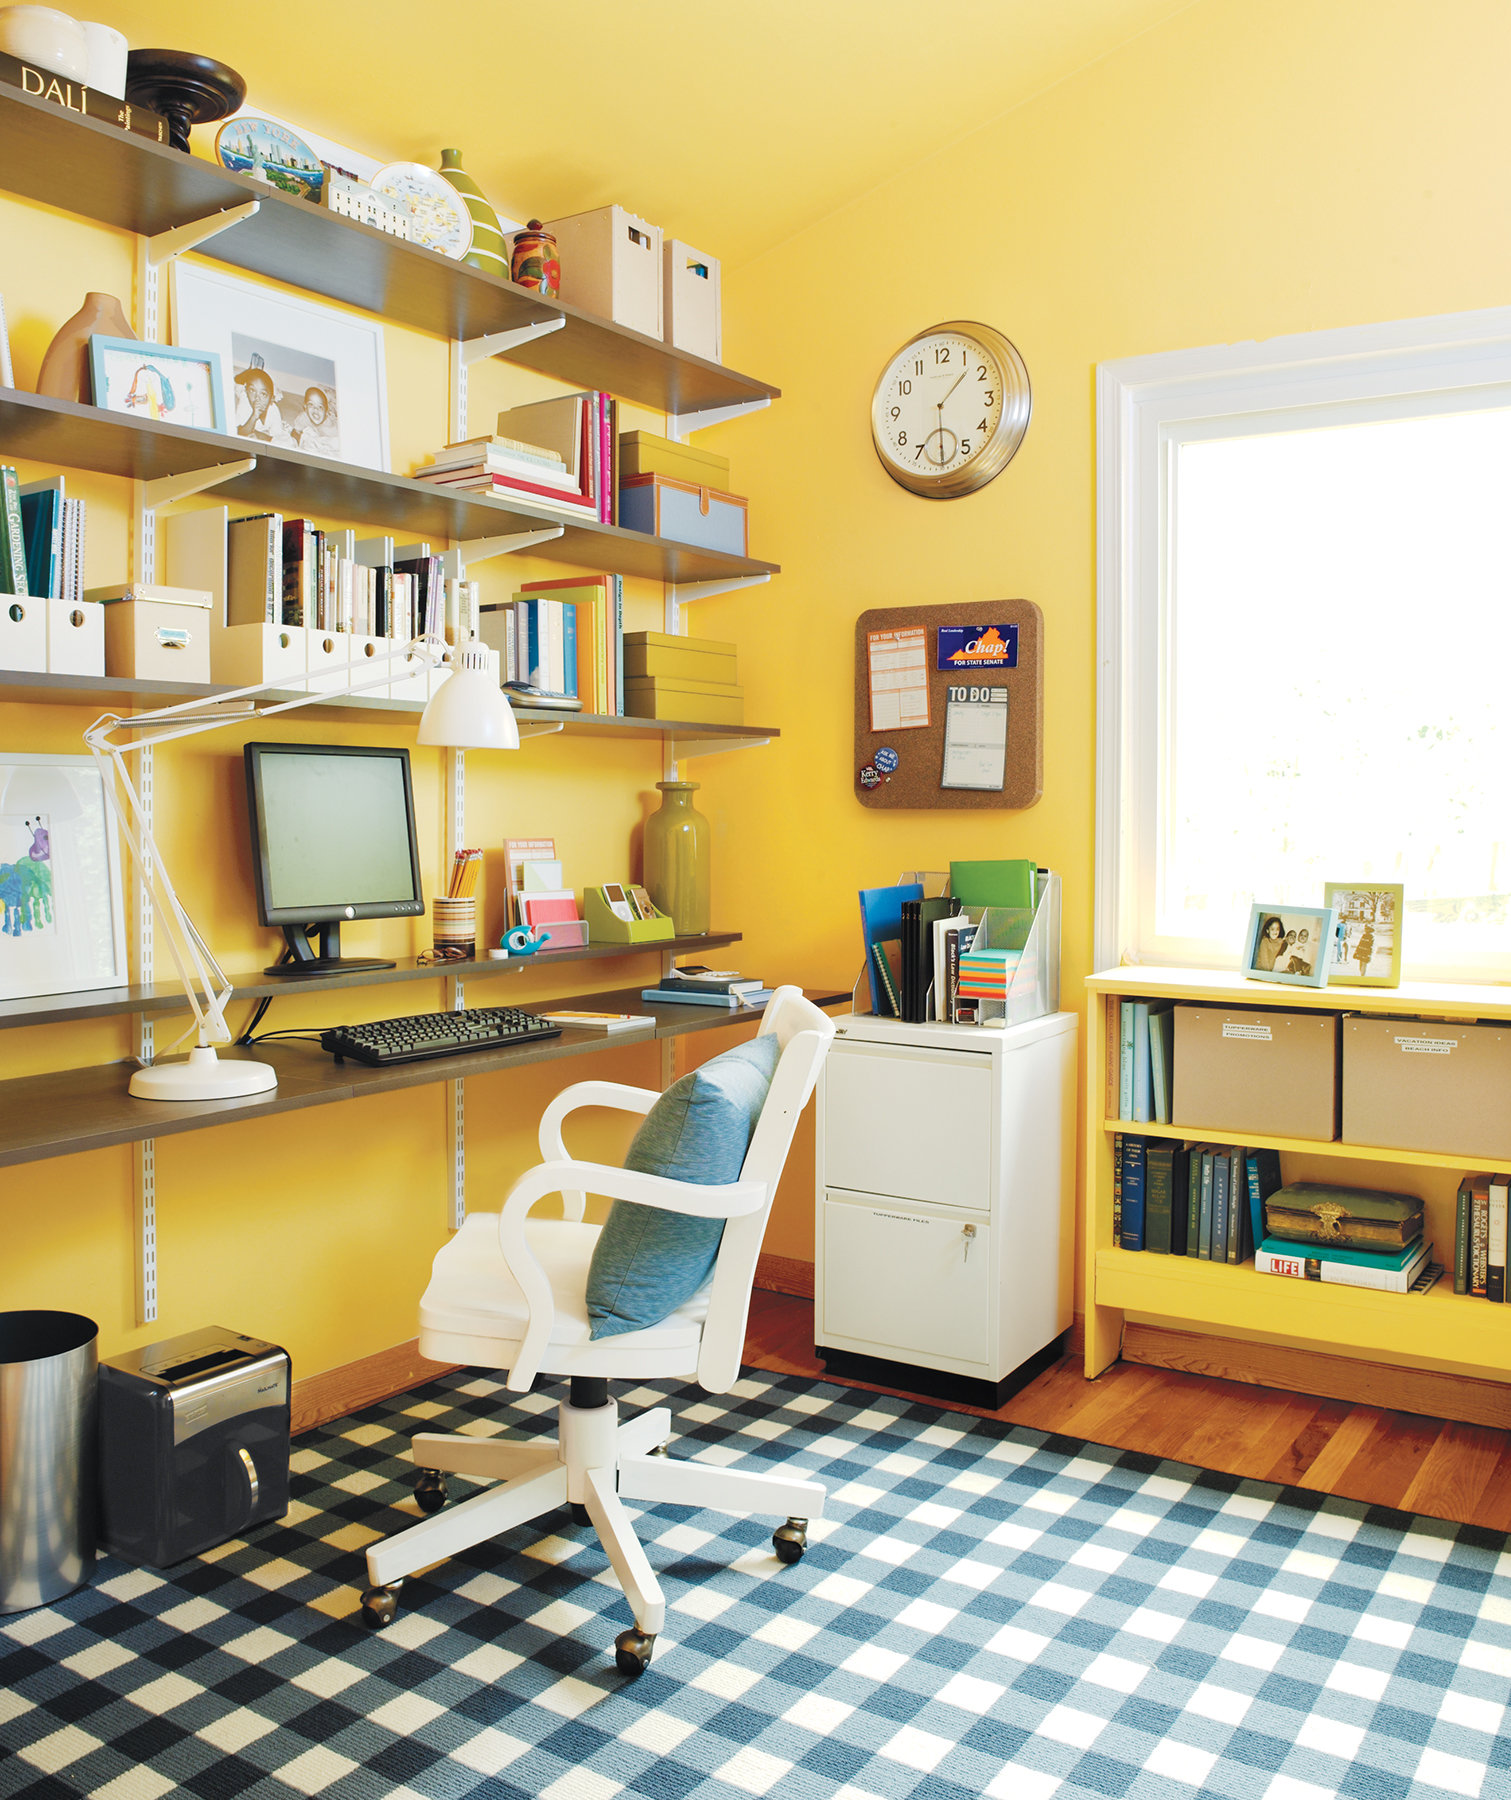 21 ideas for an organized home office real simple Organizing your home